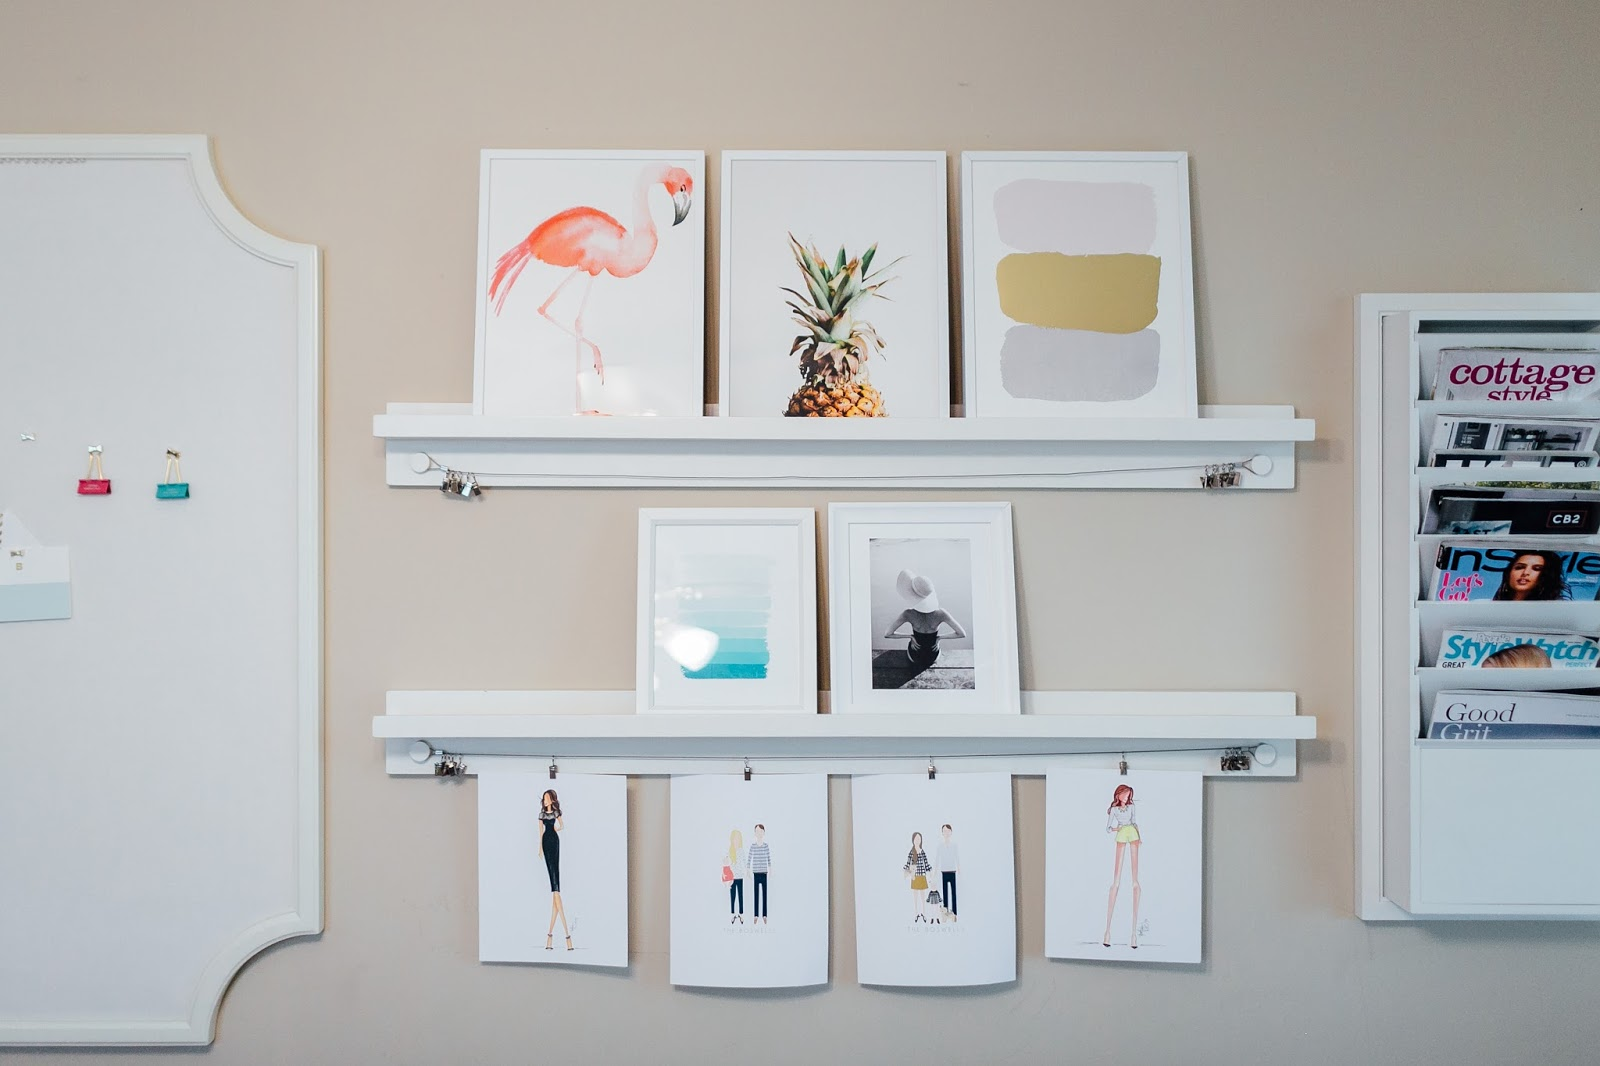 Cute Shelf Decor Items by lifestyle blogger Laura of Walking in Memphis in High Heels